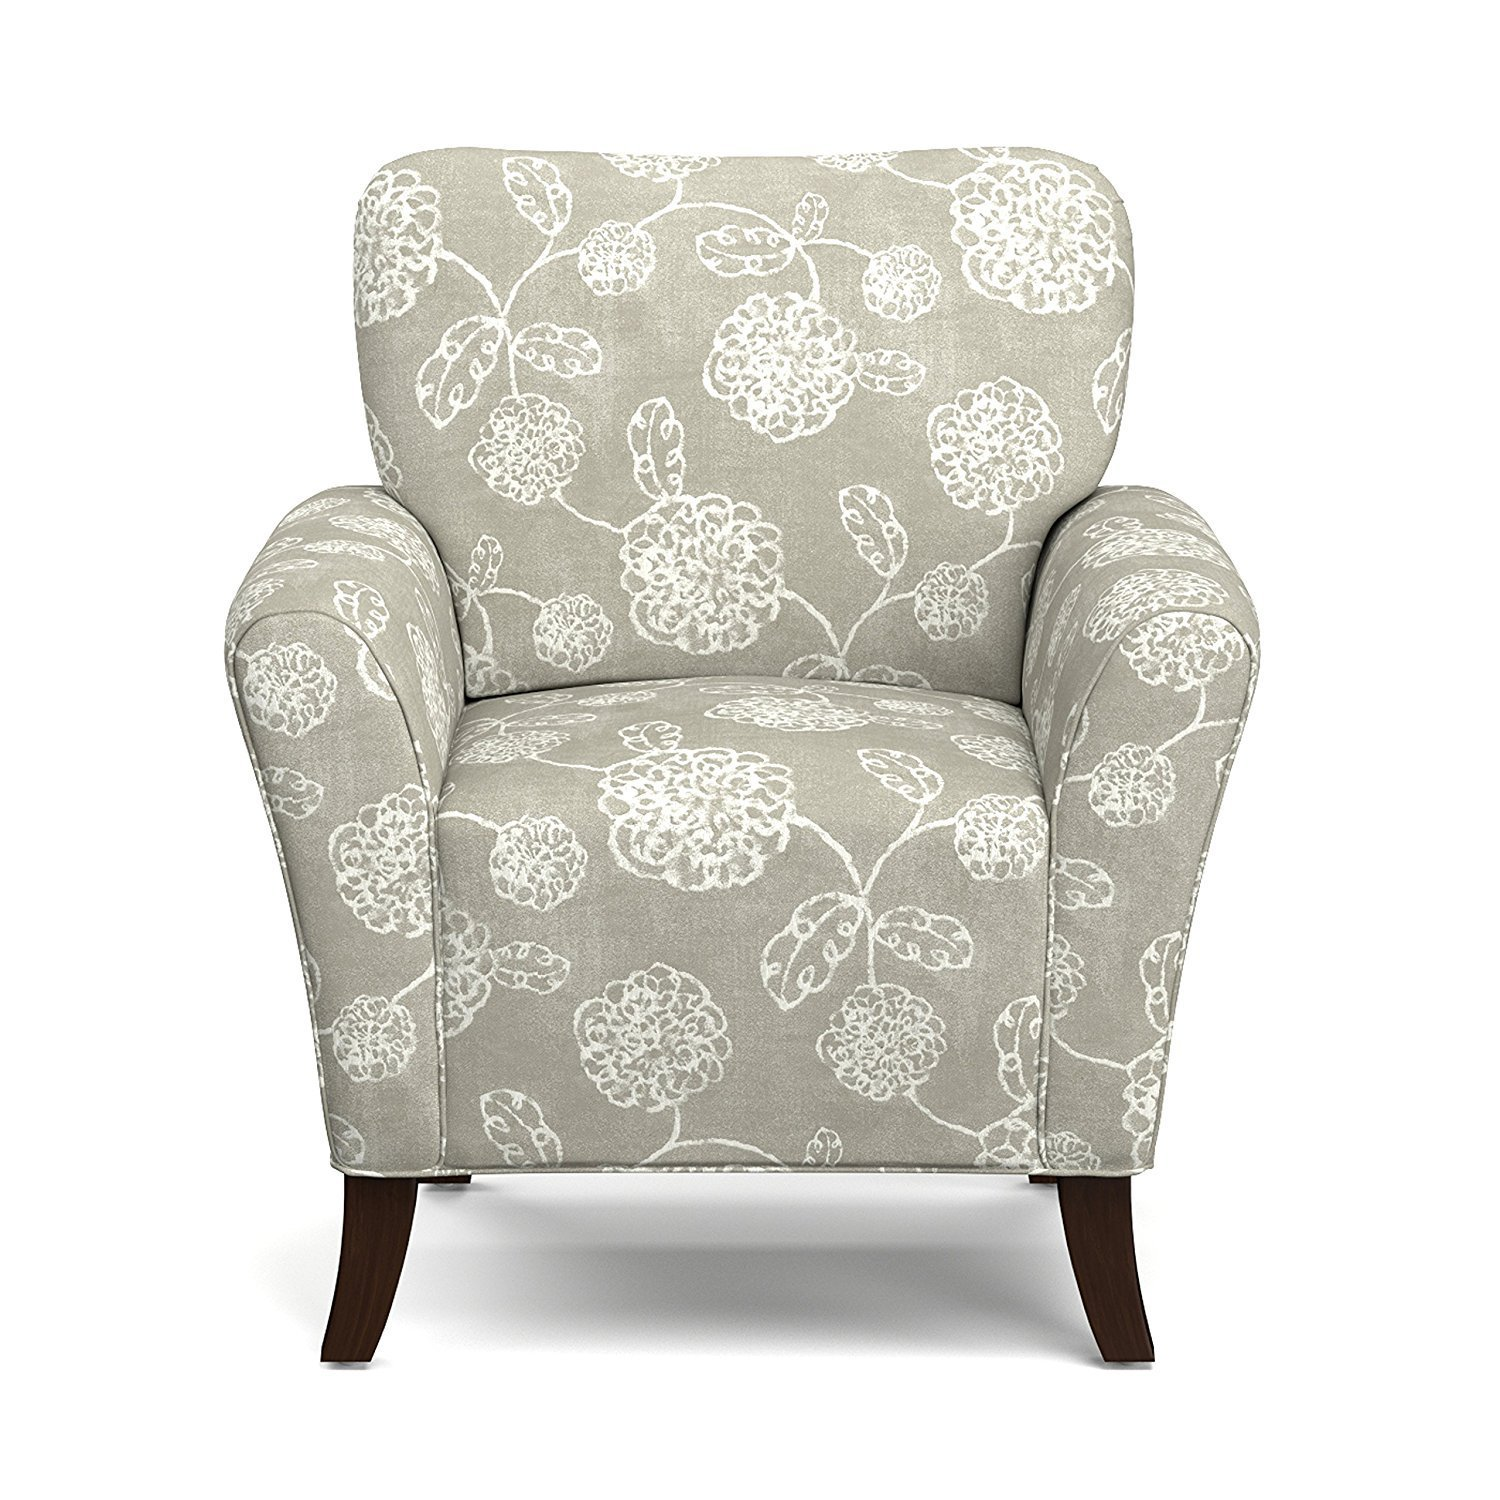 Upholstered living room chairs home furniture design - Upholstered benches for living room ...